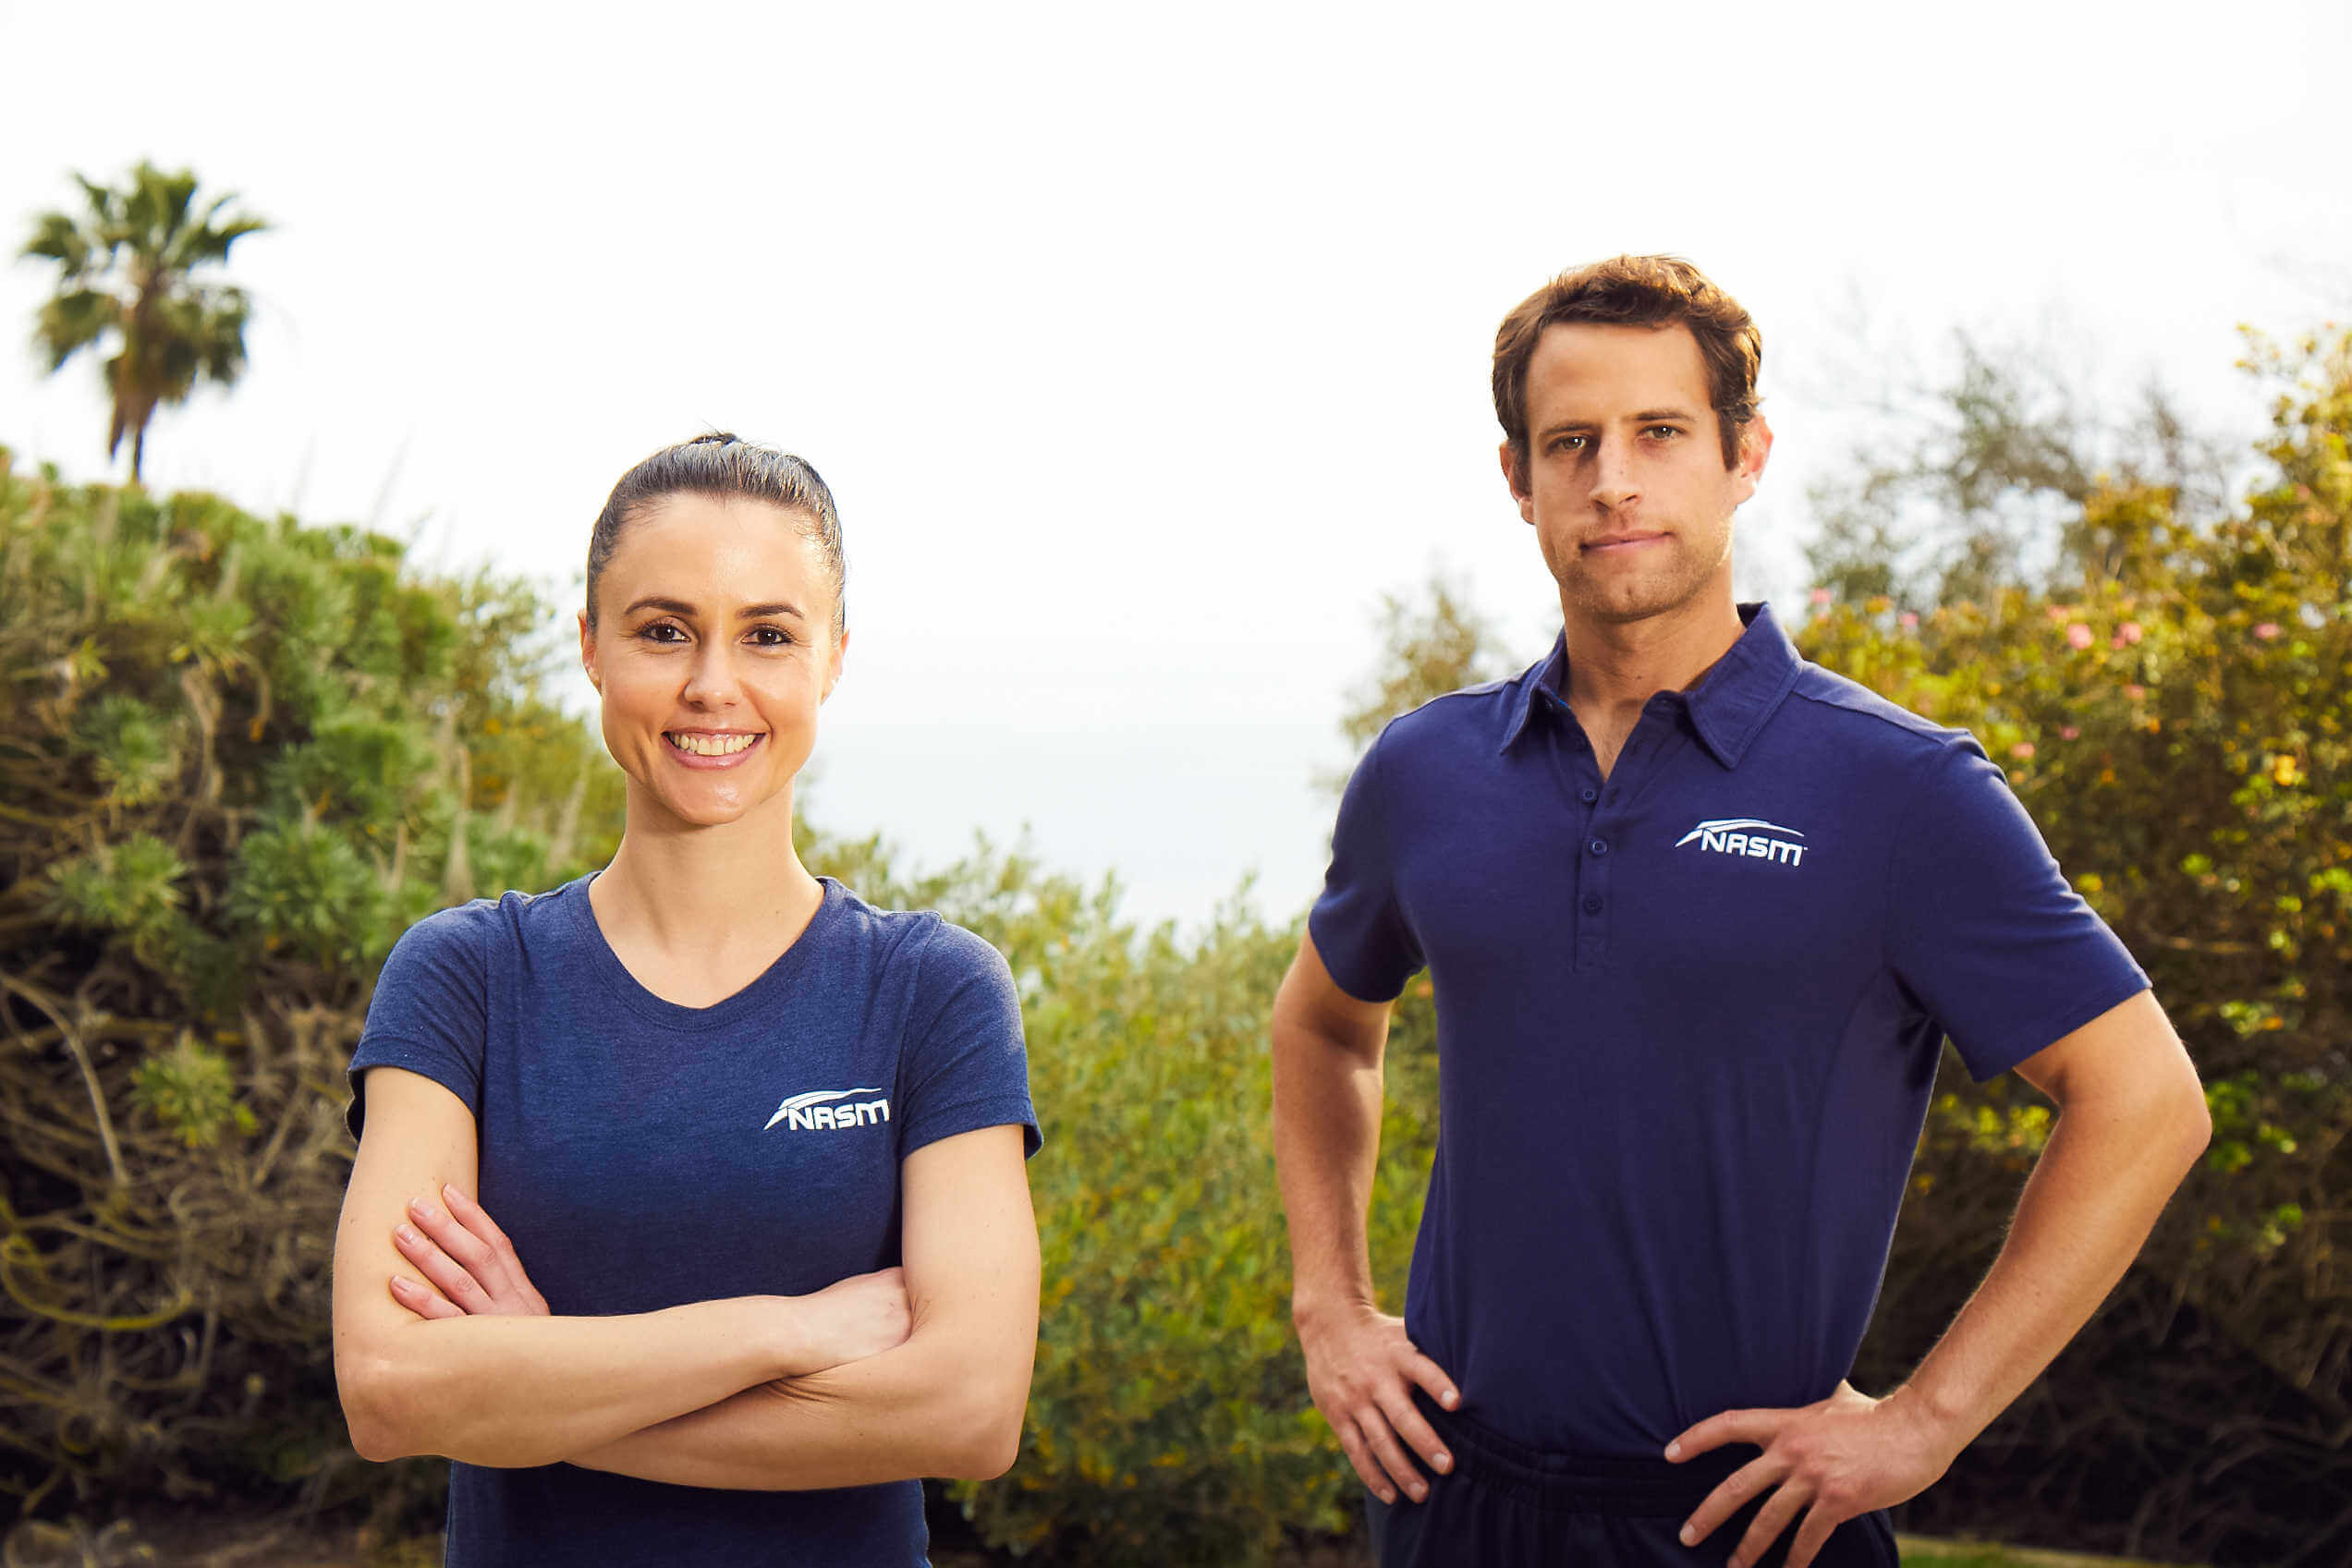 Two personal trainers standing